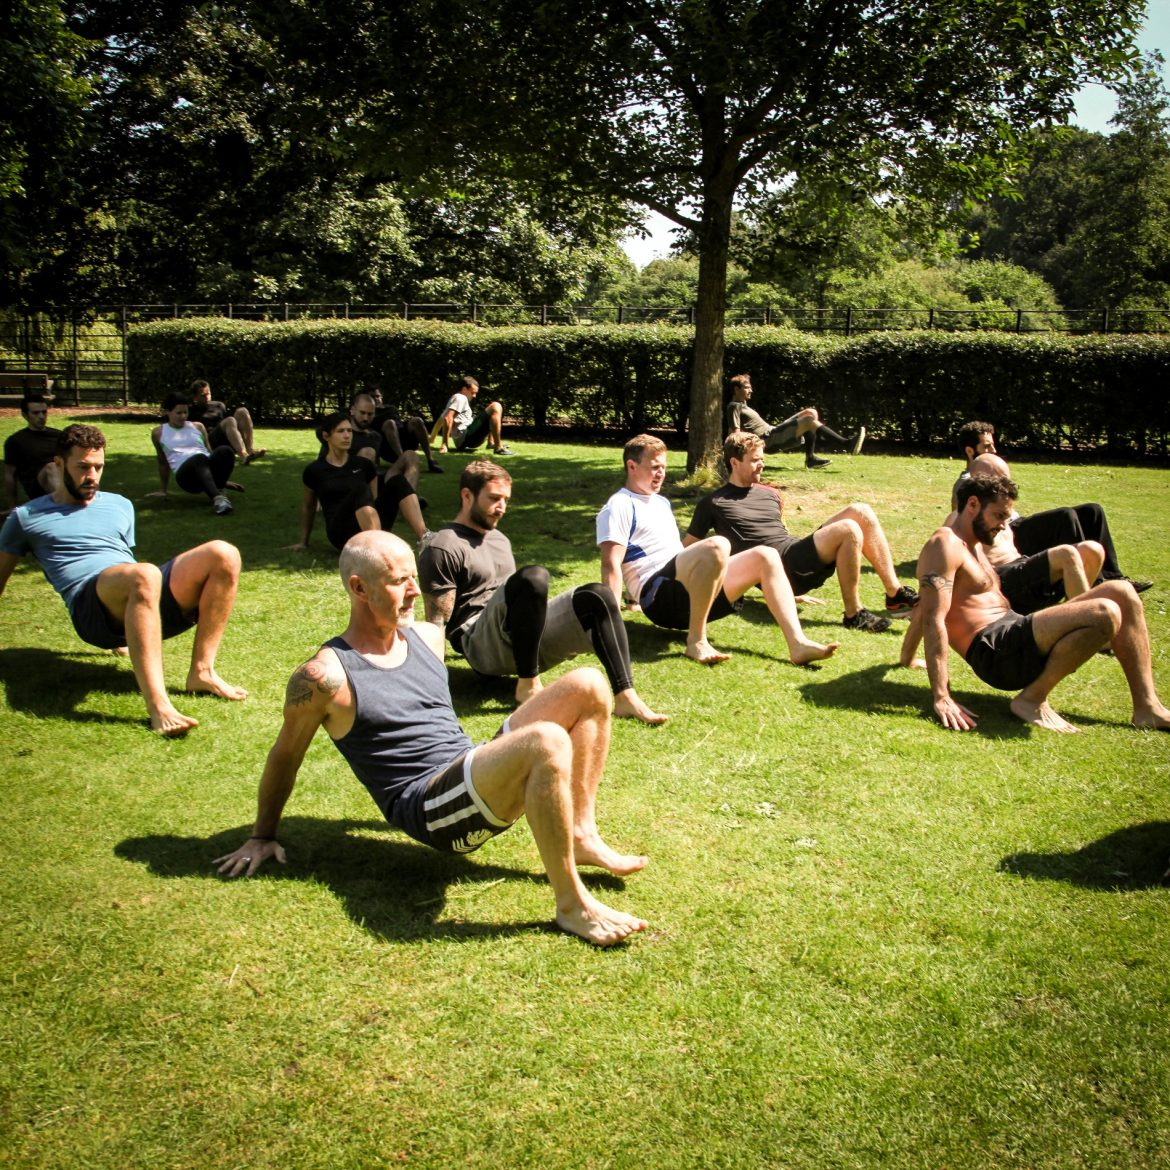 Inverted Foot Hand Crawl - Group